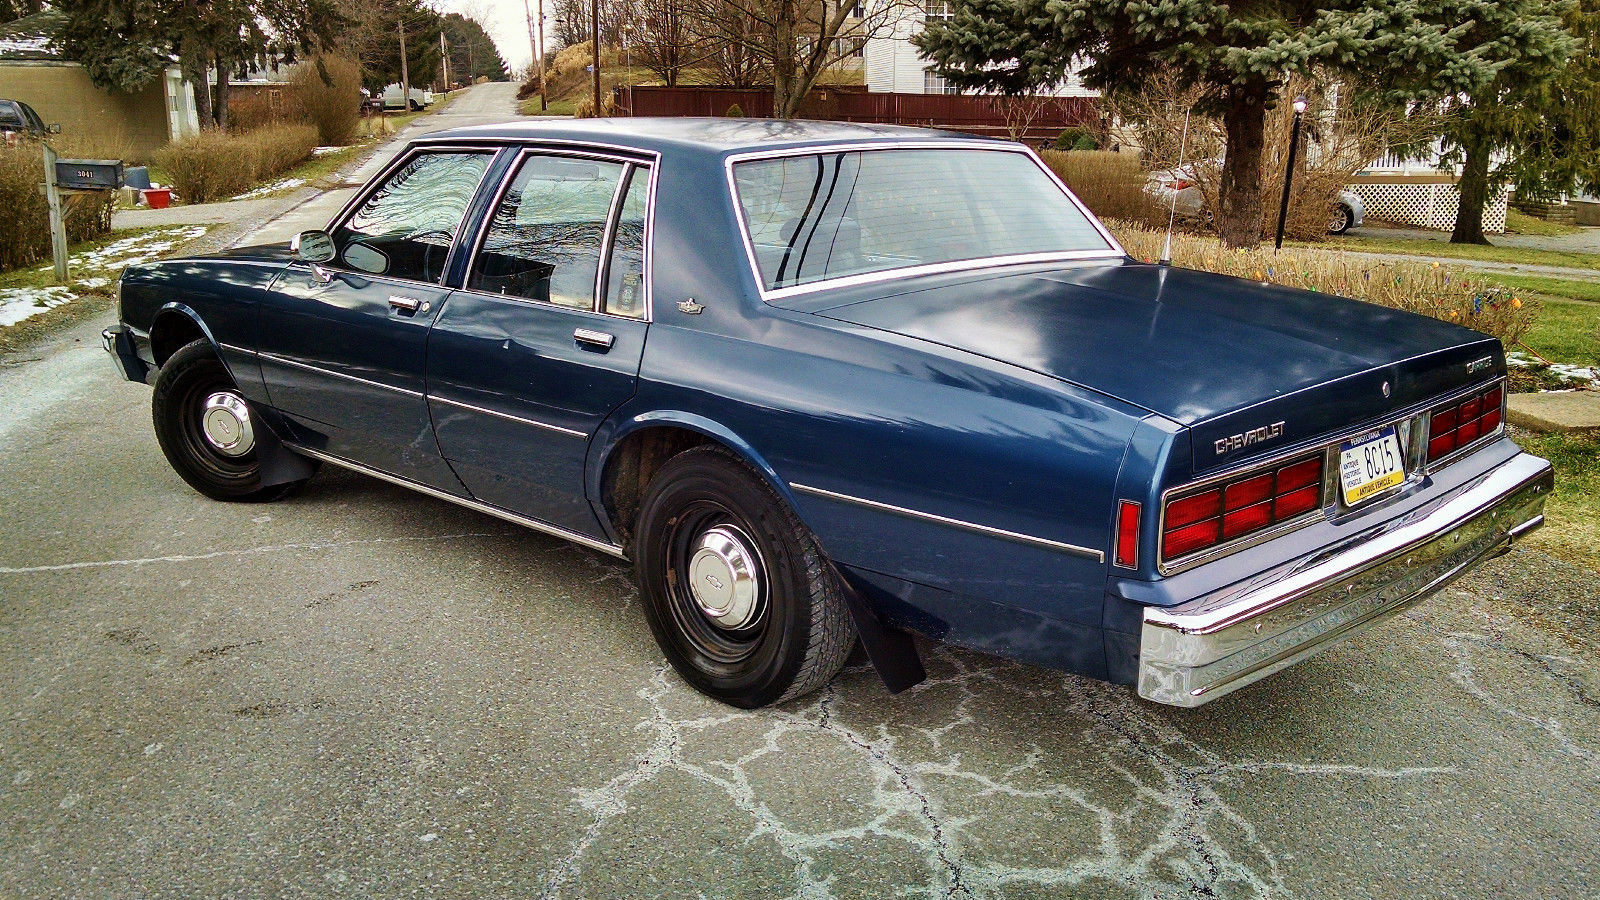 Daily Turismo: Auction Watch: 1989 Chevrolet Caprice 9C1